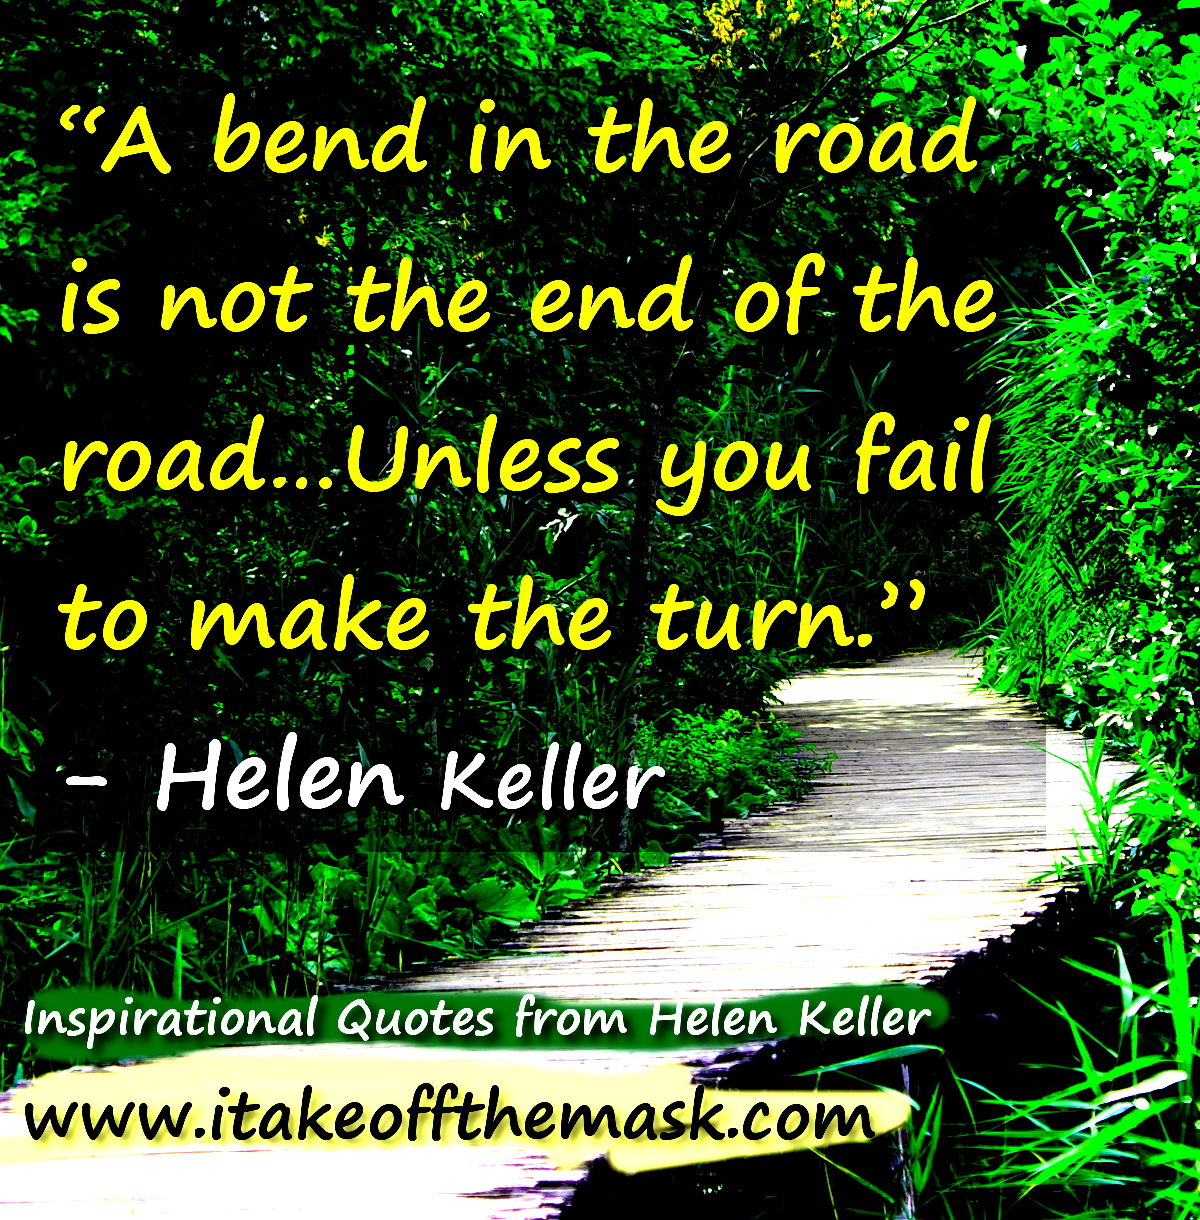 Inspirational Quotes from Helen Keller